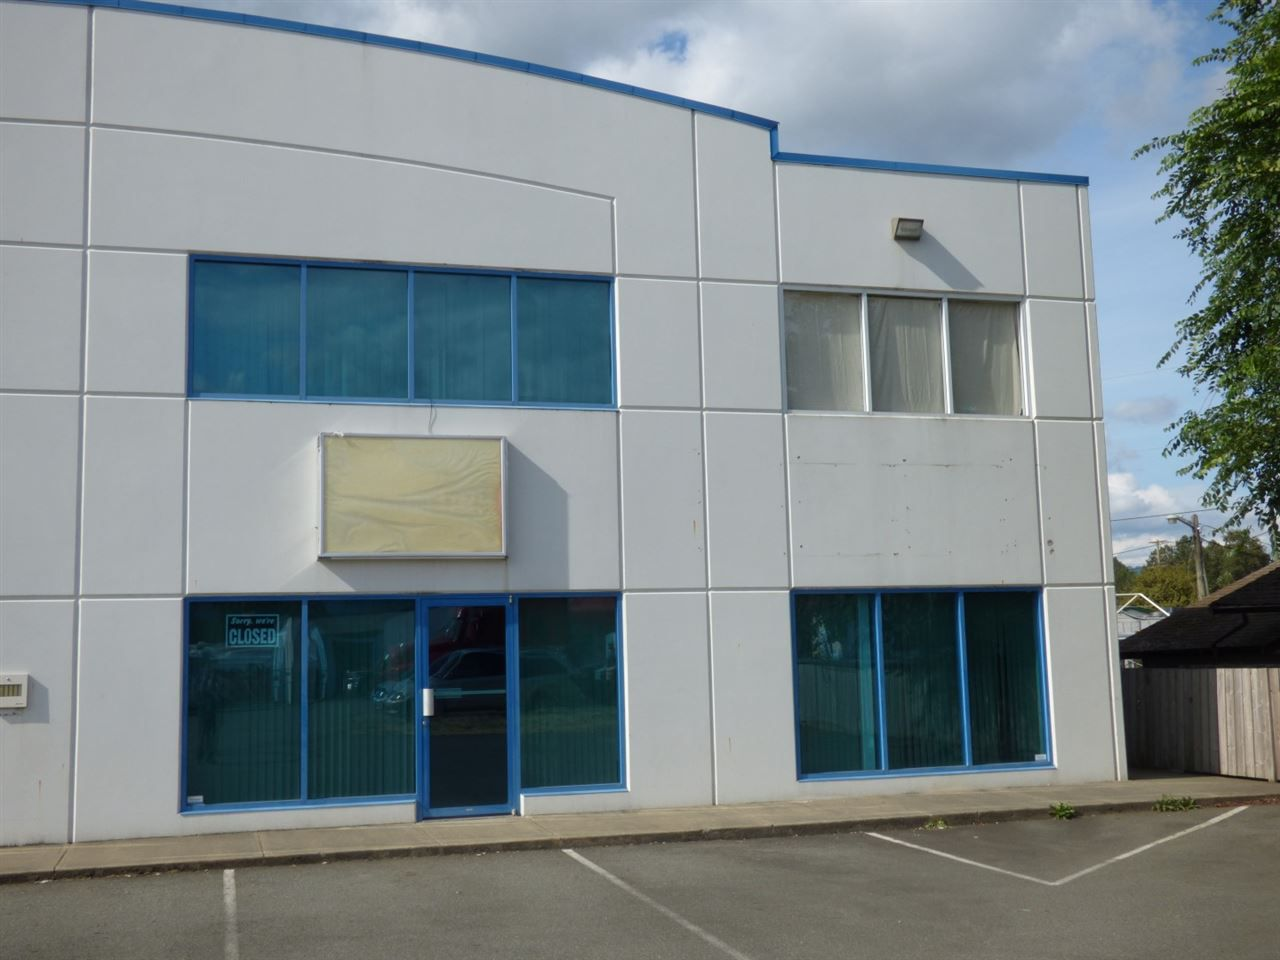 Main Photo: 1 7870 ENTERPRISE Drive in Chilliwack: Chilliwack Yale Rd West Commercial for lease : MLS®# C8000499